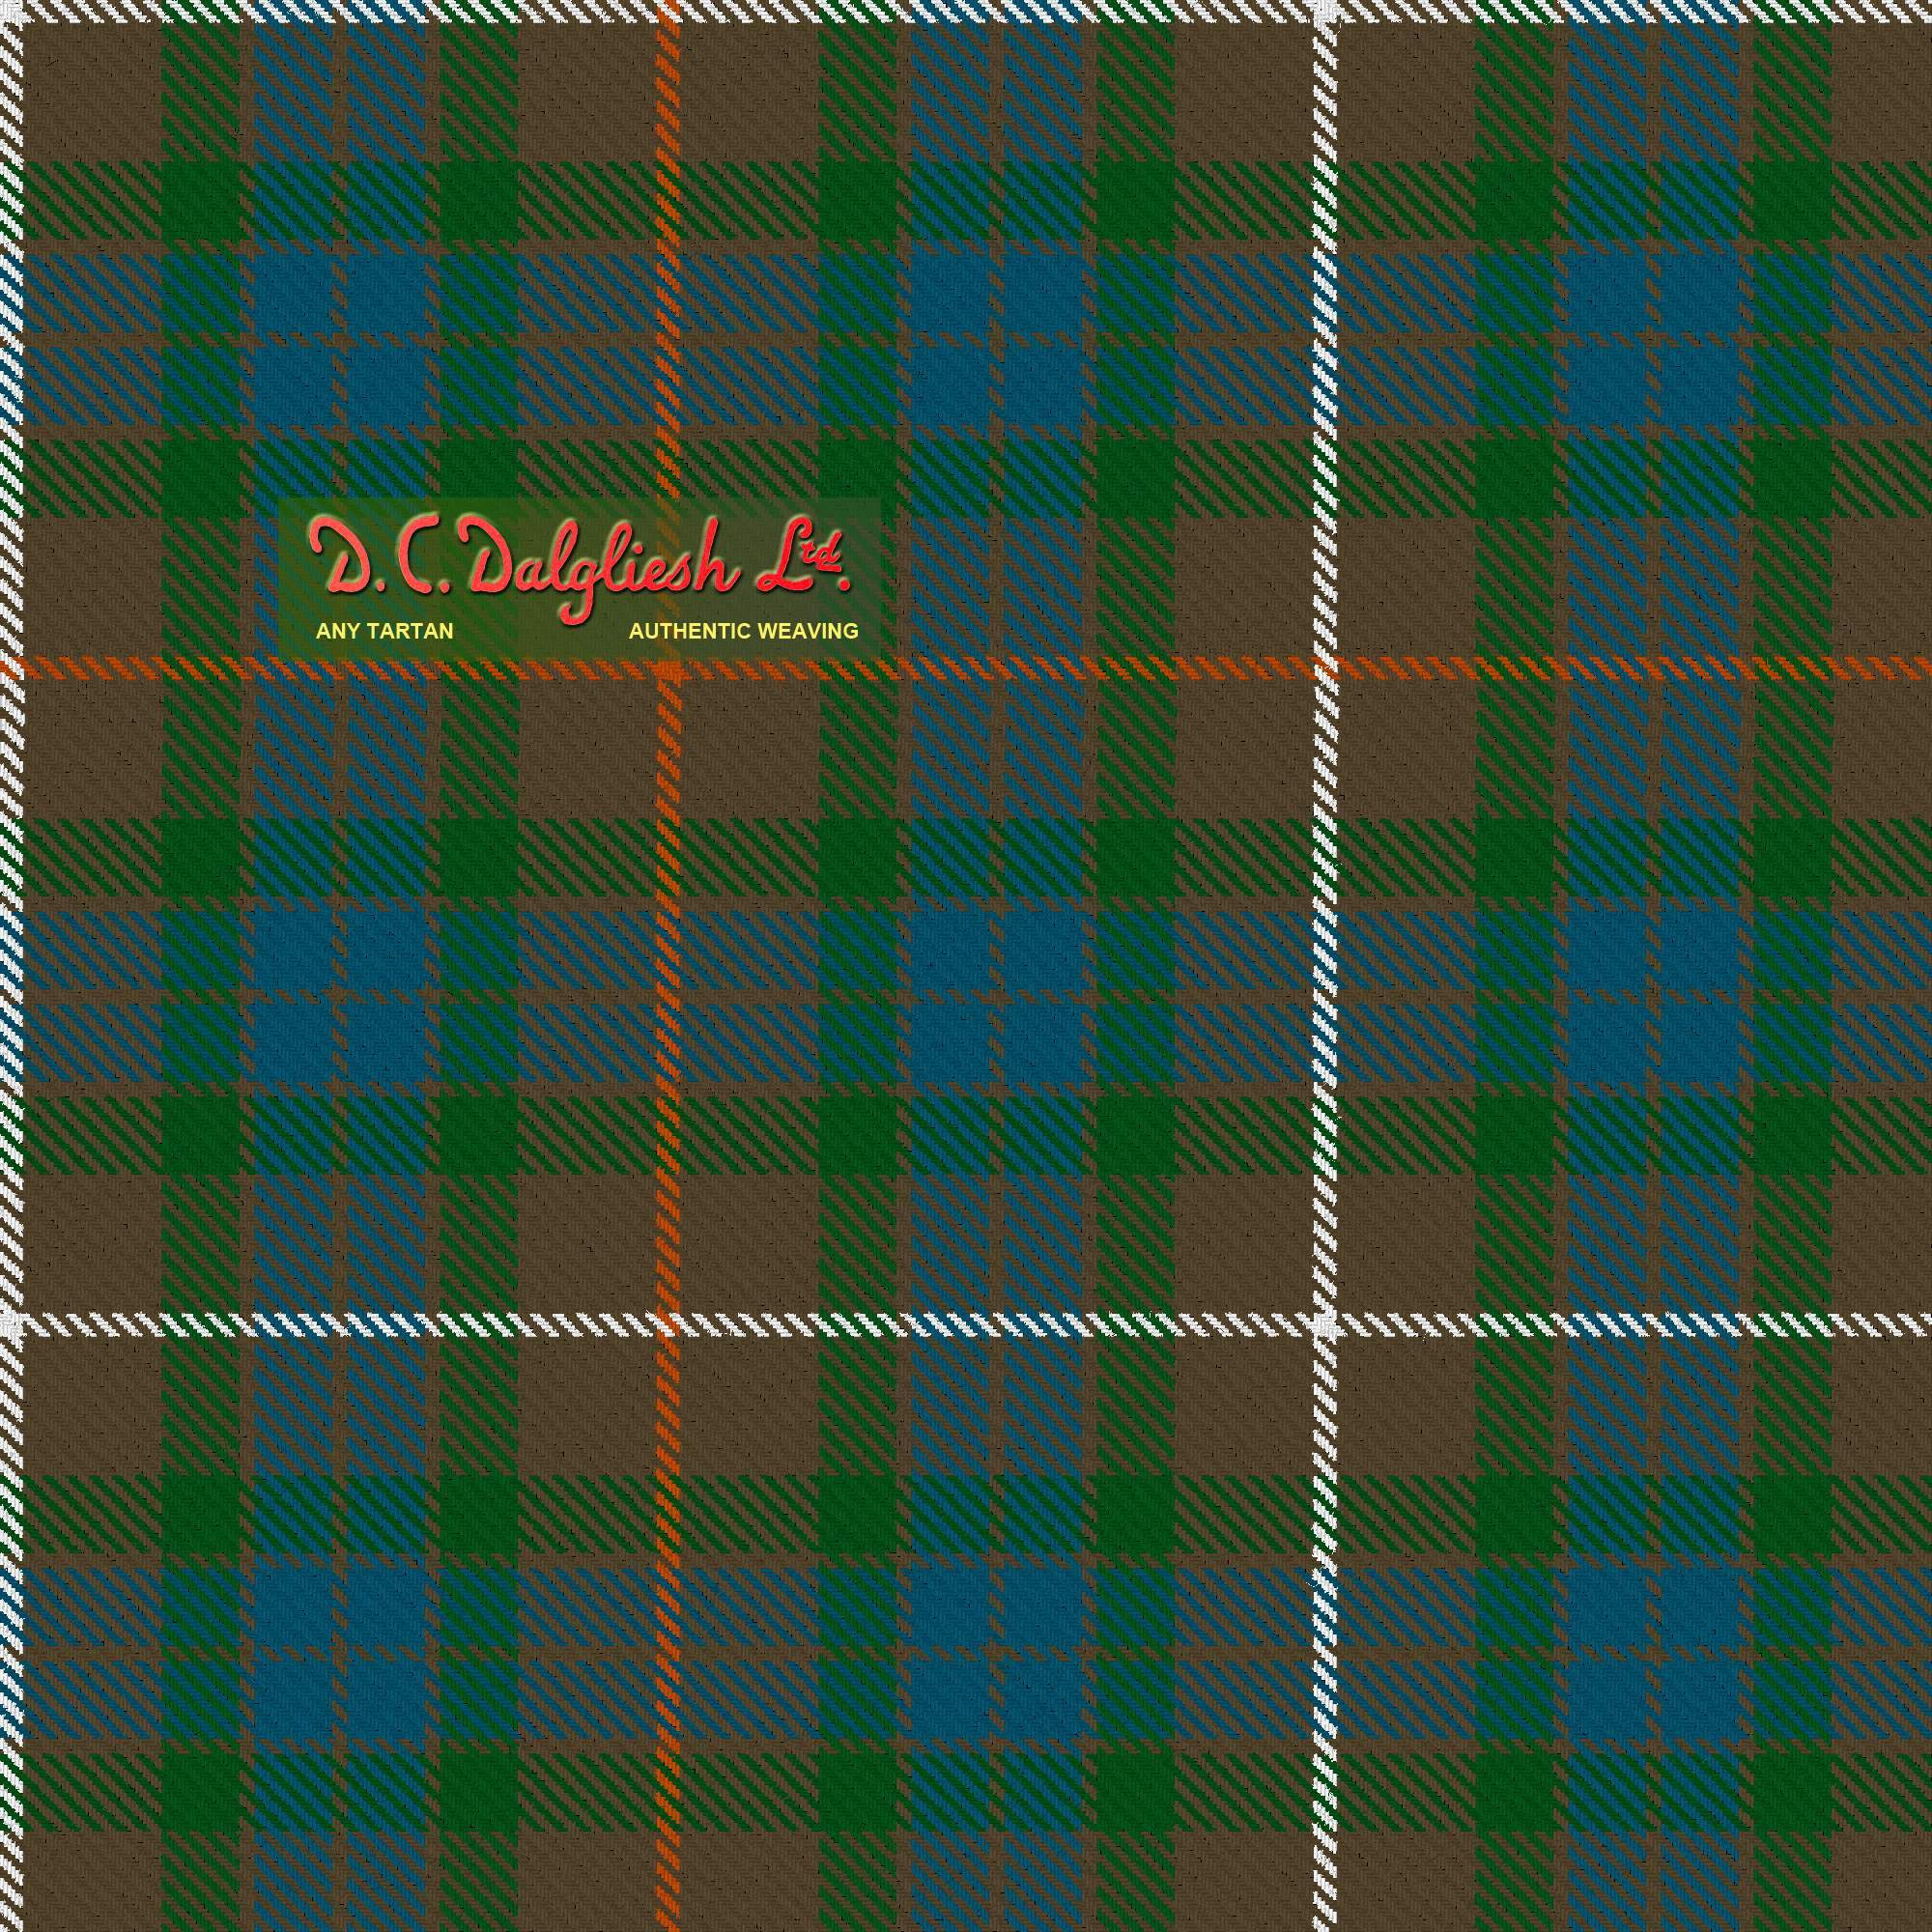 Fraser Hunting Fabric By Dc Dalgliesh Hand Crafted Tartans